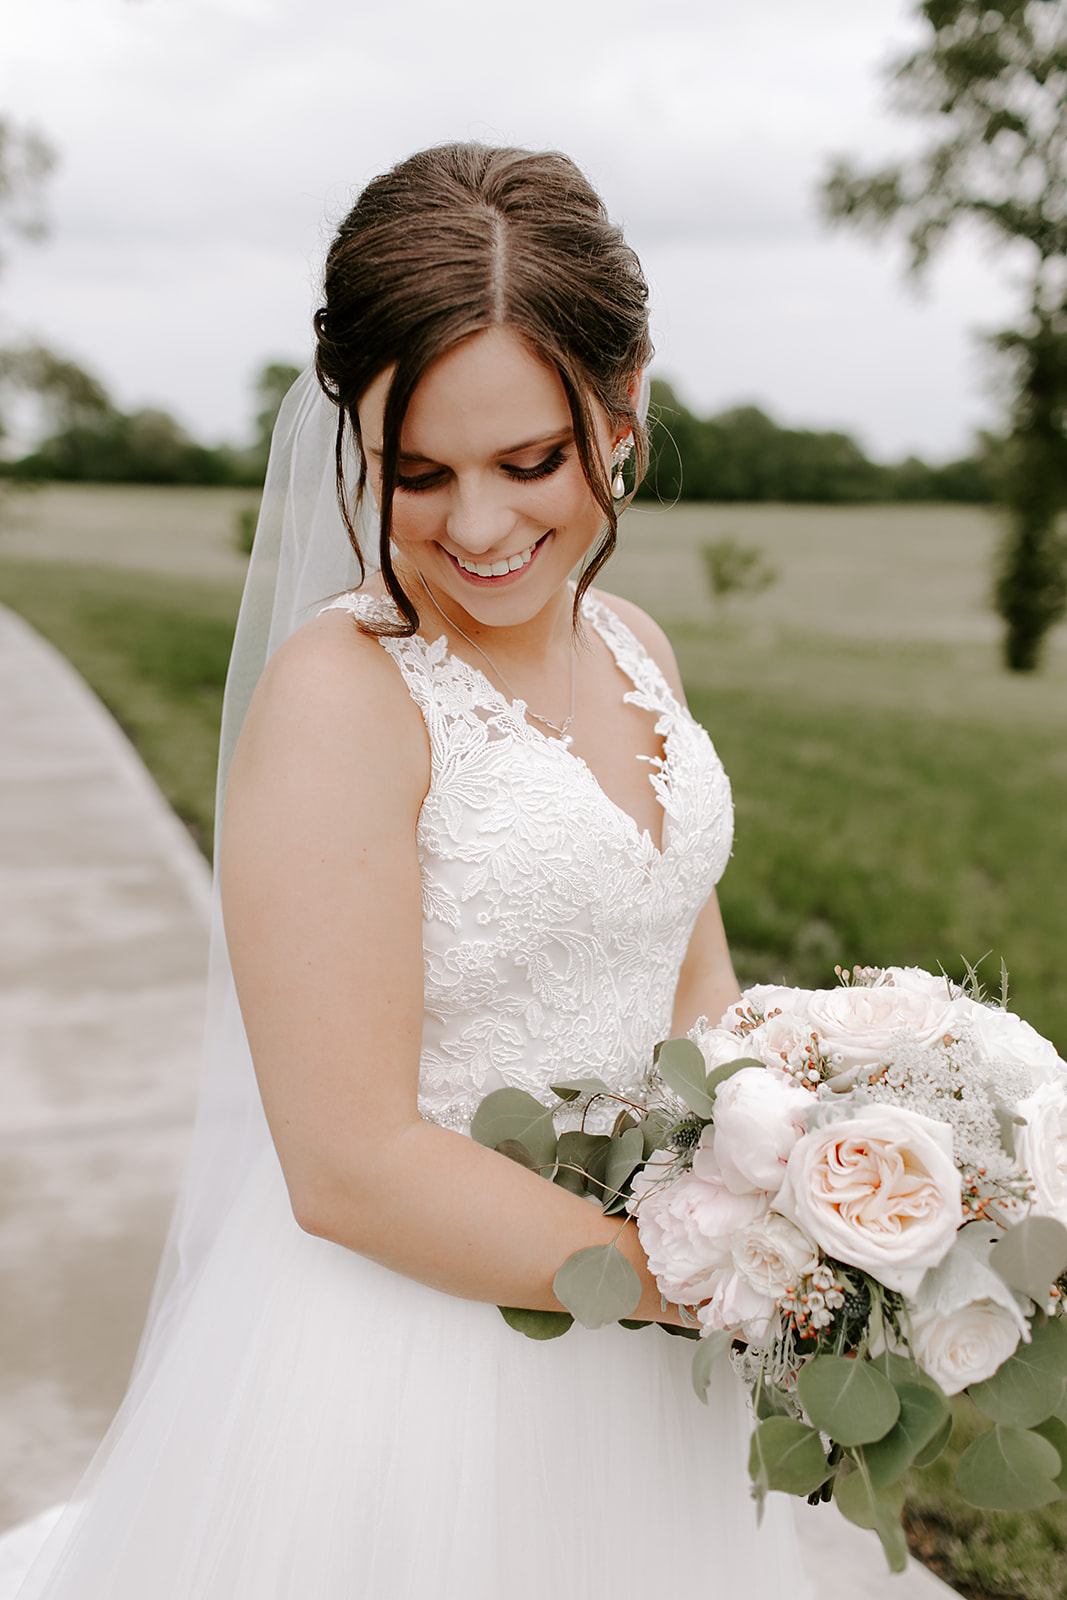 Kendra_and_Mattew_Indiana_Wedding_by_Emily_Wehner-345.jpg